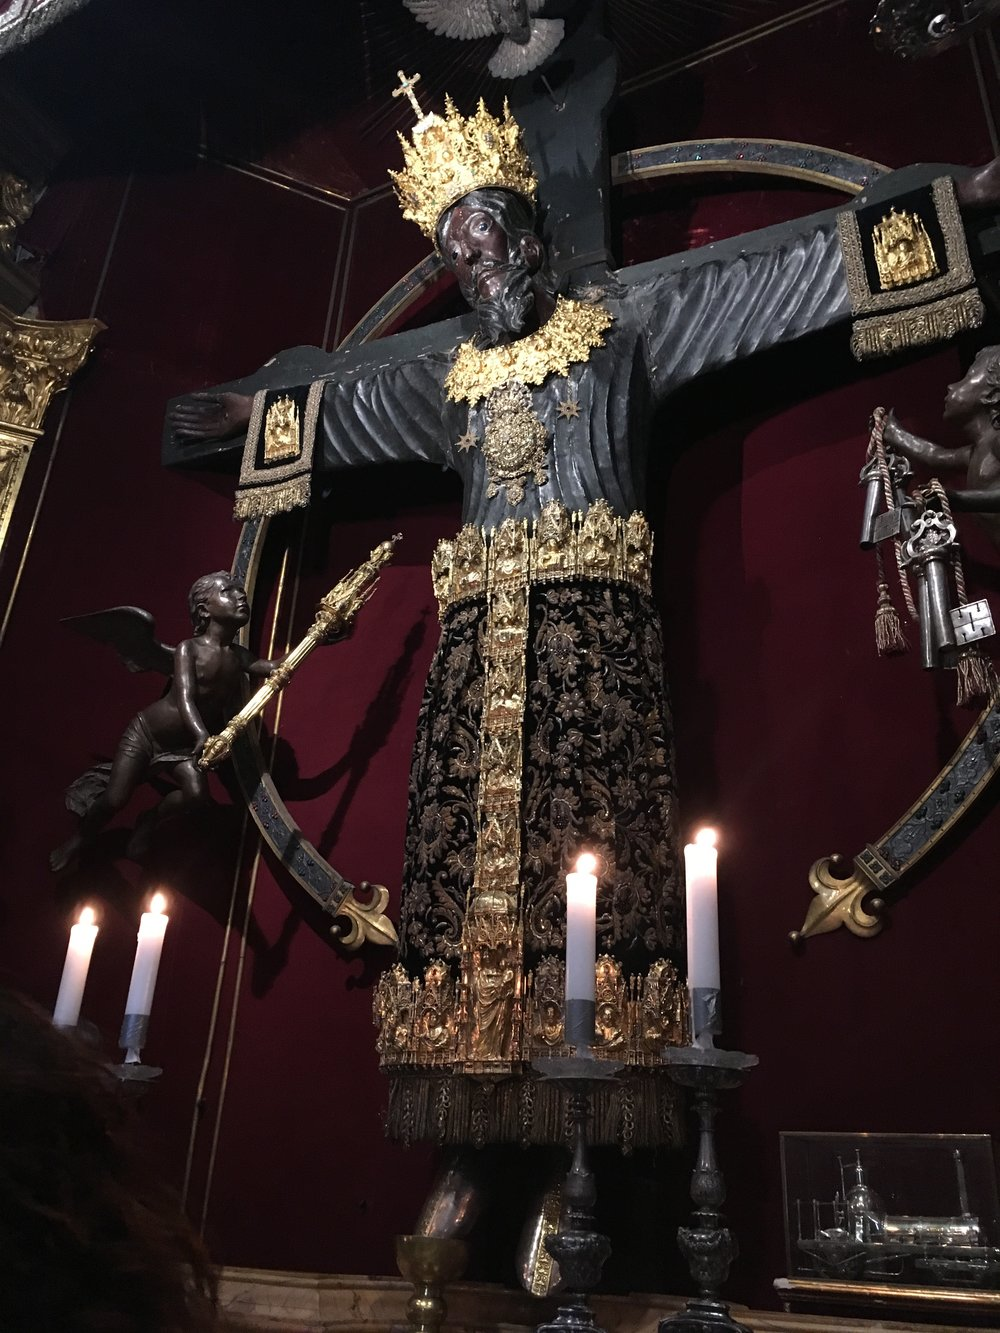 The Volto Santo crucifix, clad in gold vestements for the Santa Croce Festival, Lucca, Italy.